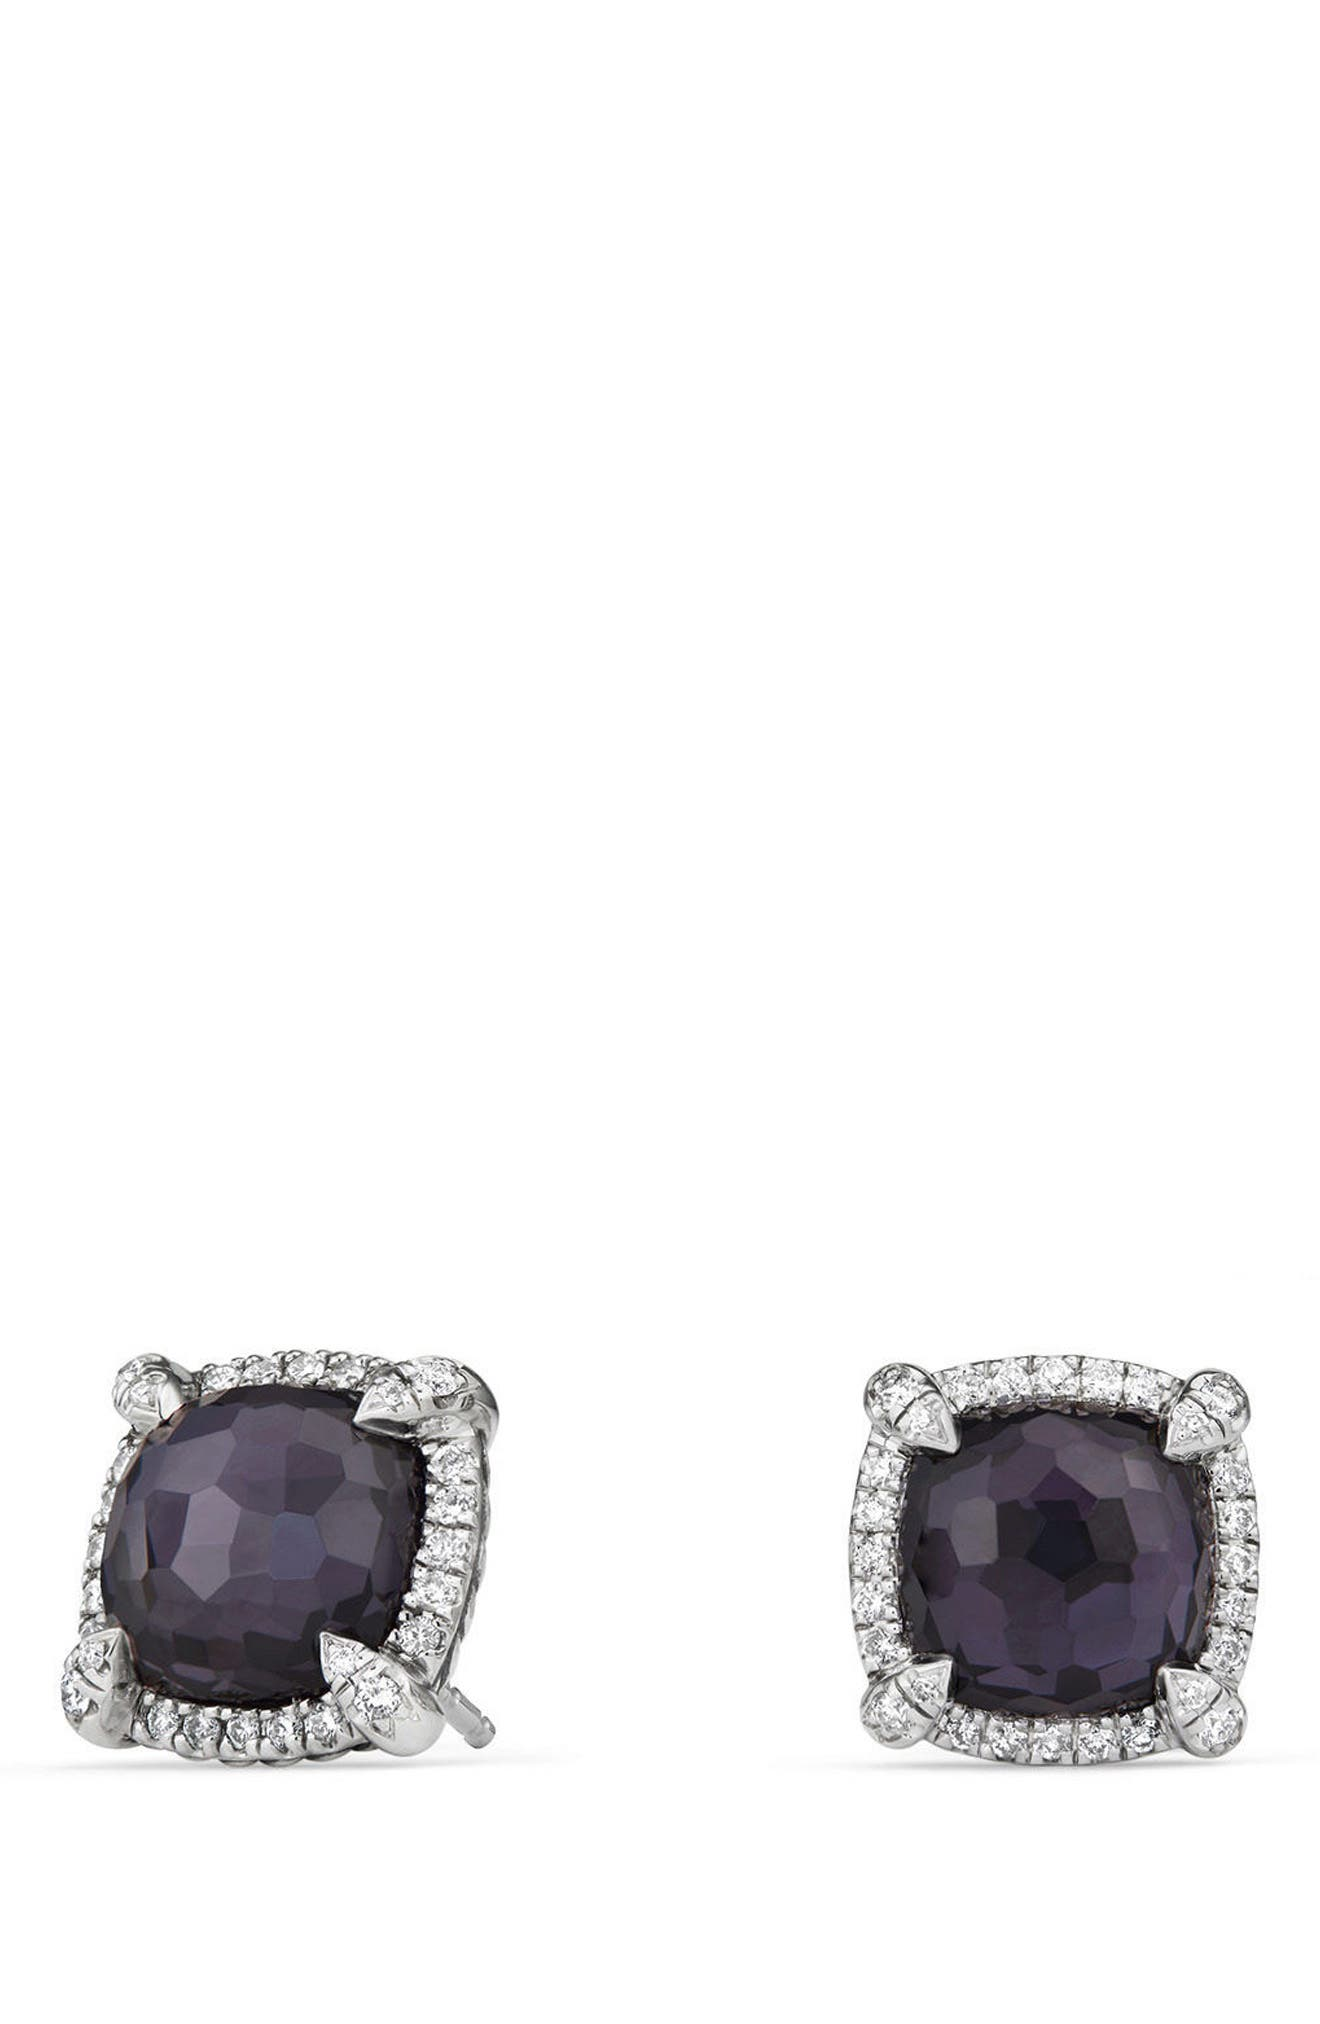 Alternate Image 1 Selected - David Yurman Chatelaine Pavé Bezel Earring with Black Orchid and Diamonds, 9mm